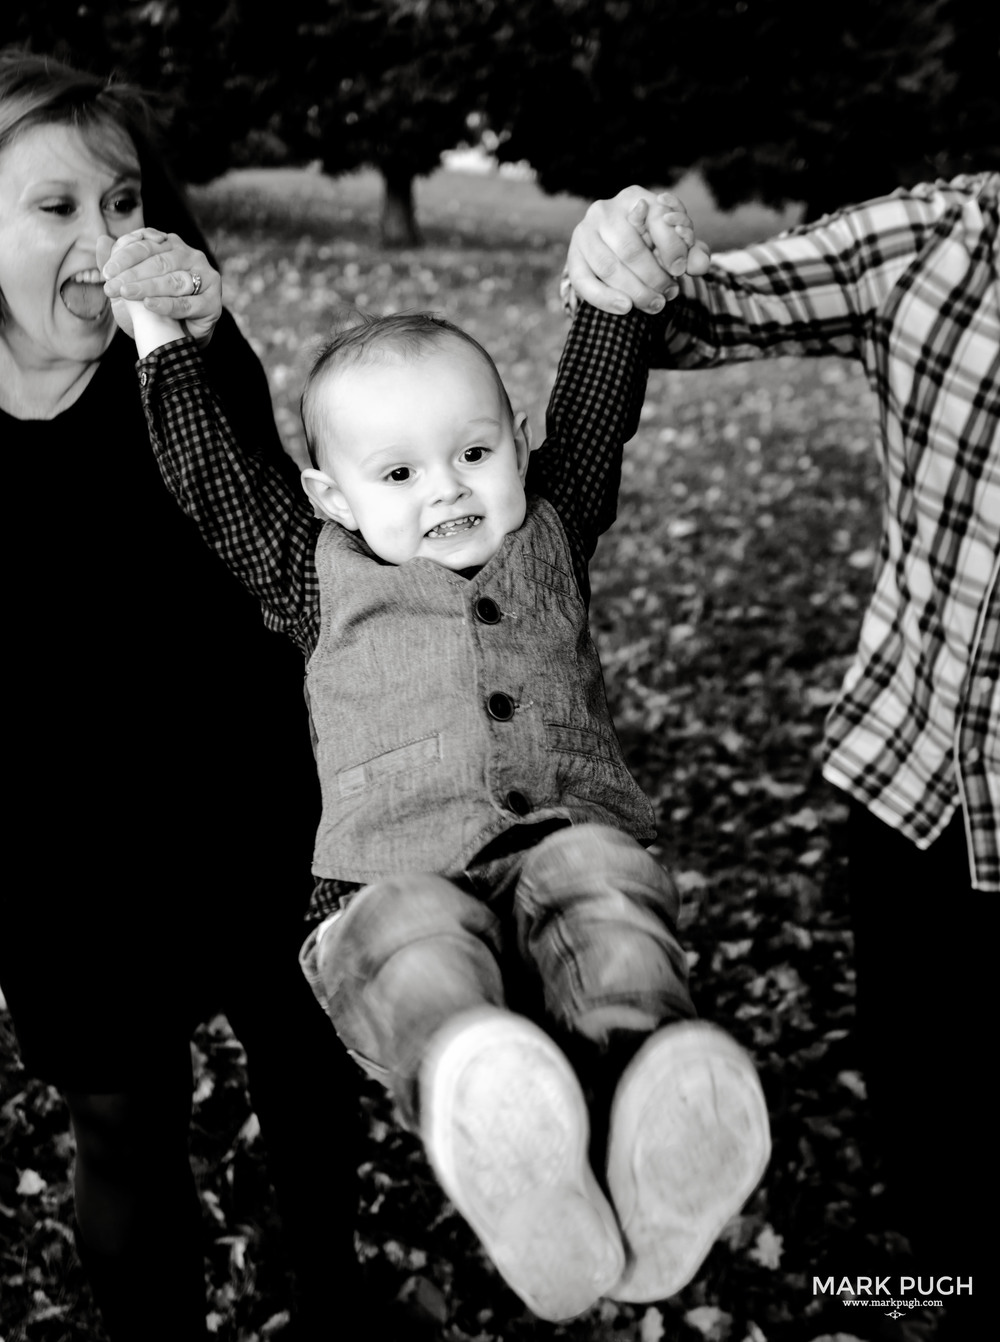 004 - Lisa Craig and Jackson - Family Photography by Mark Pugh www.markpugh.com.jpg